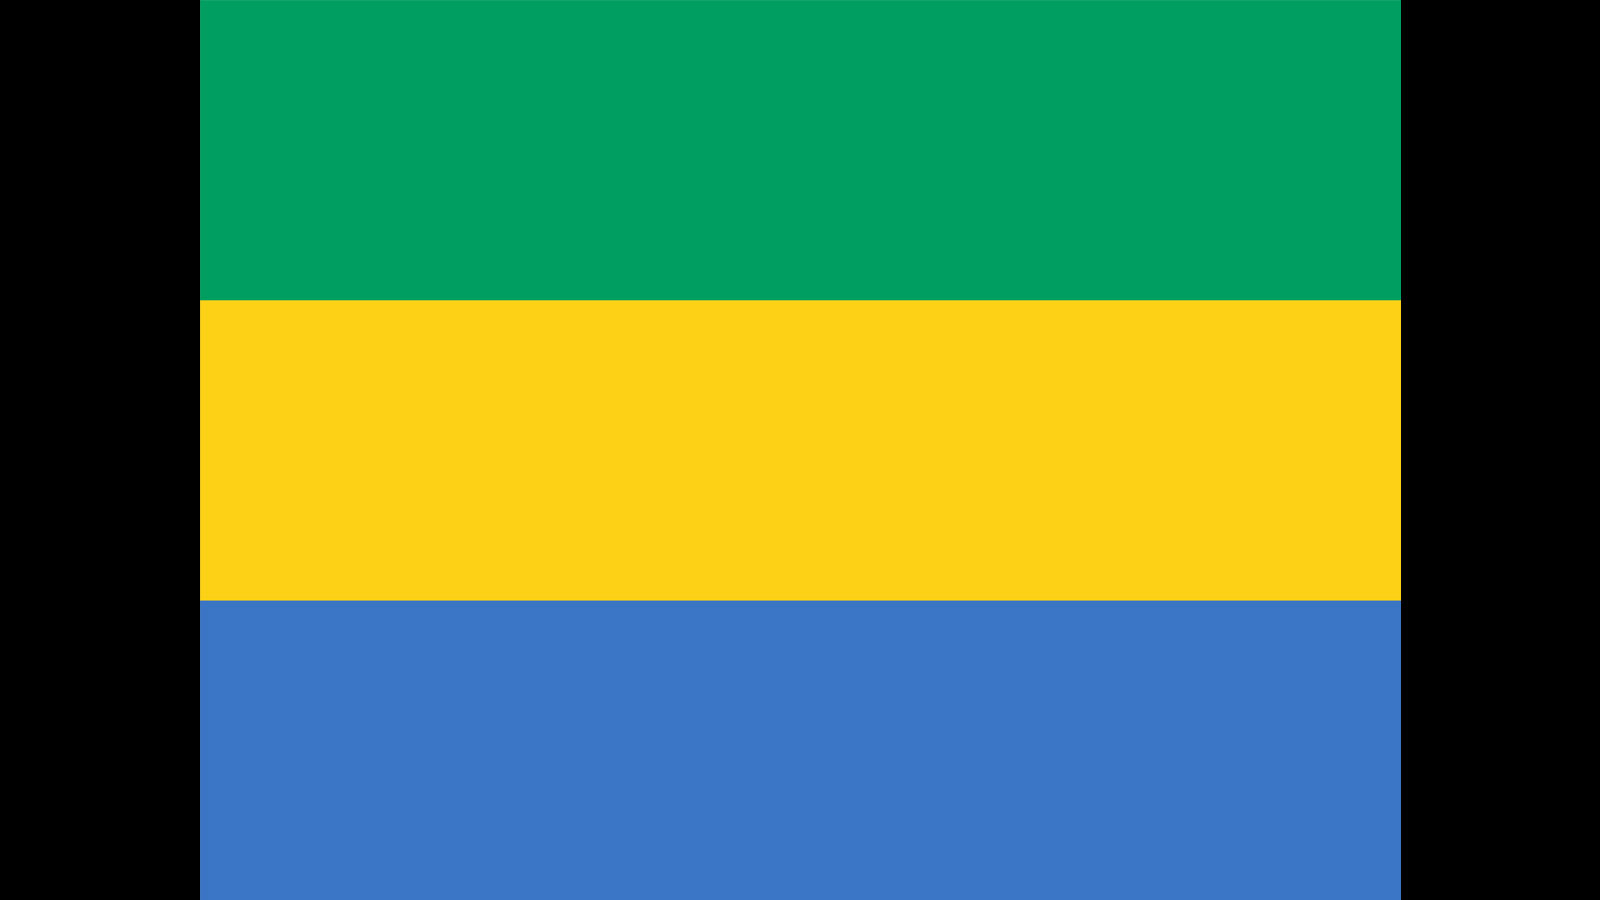 Human Rights Campaign Recognizes Decriminalization of Consensual Same-Sex Relations in Gabon